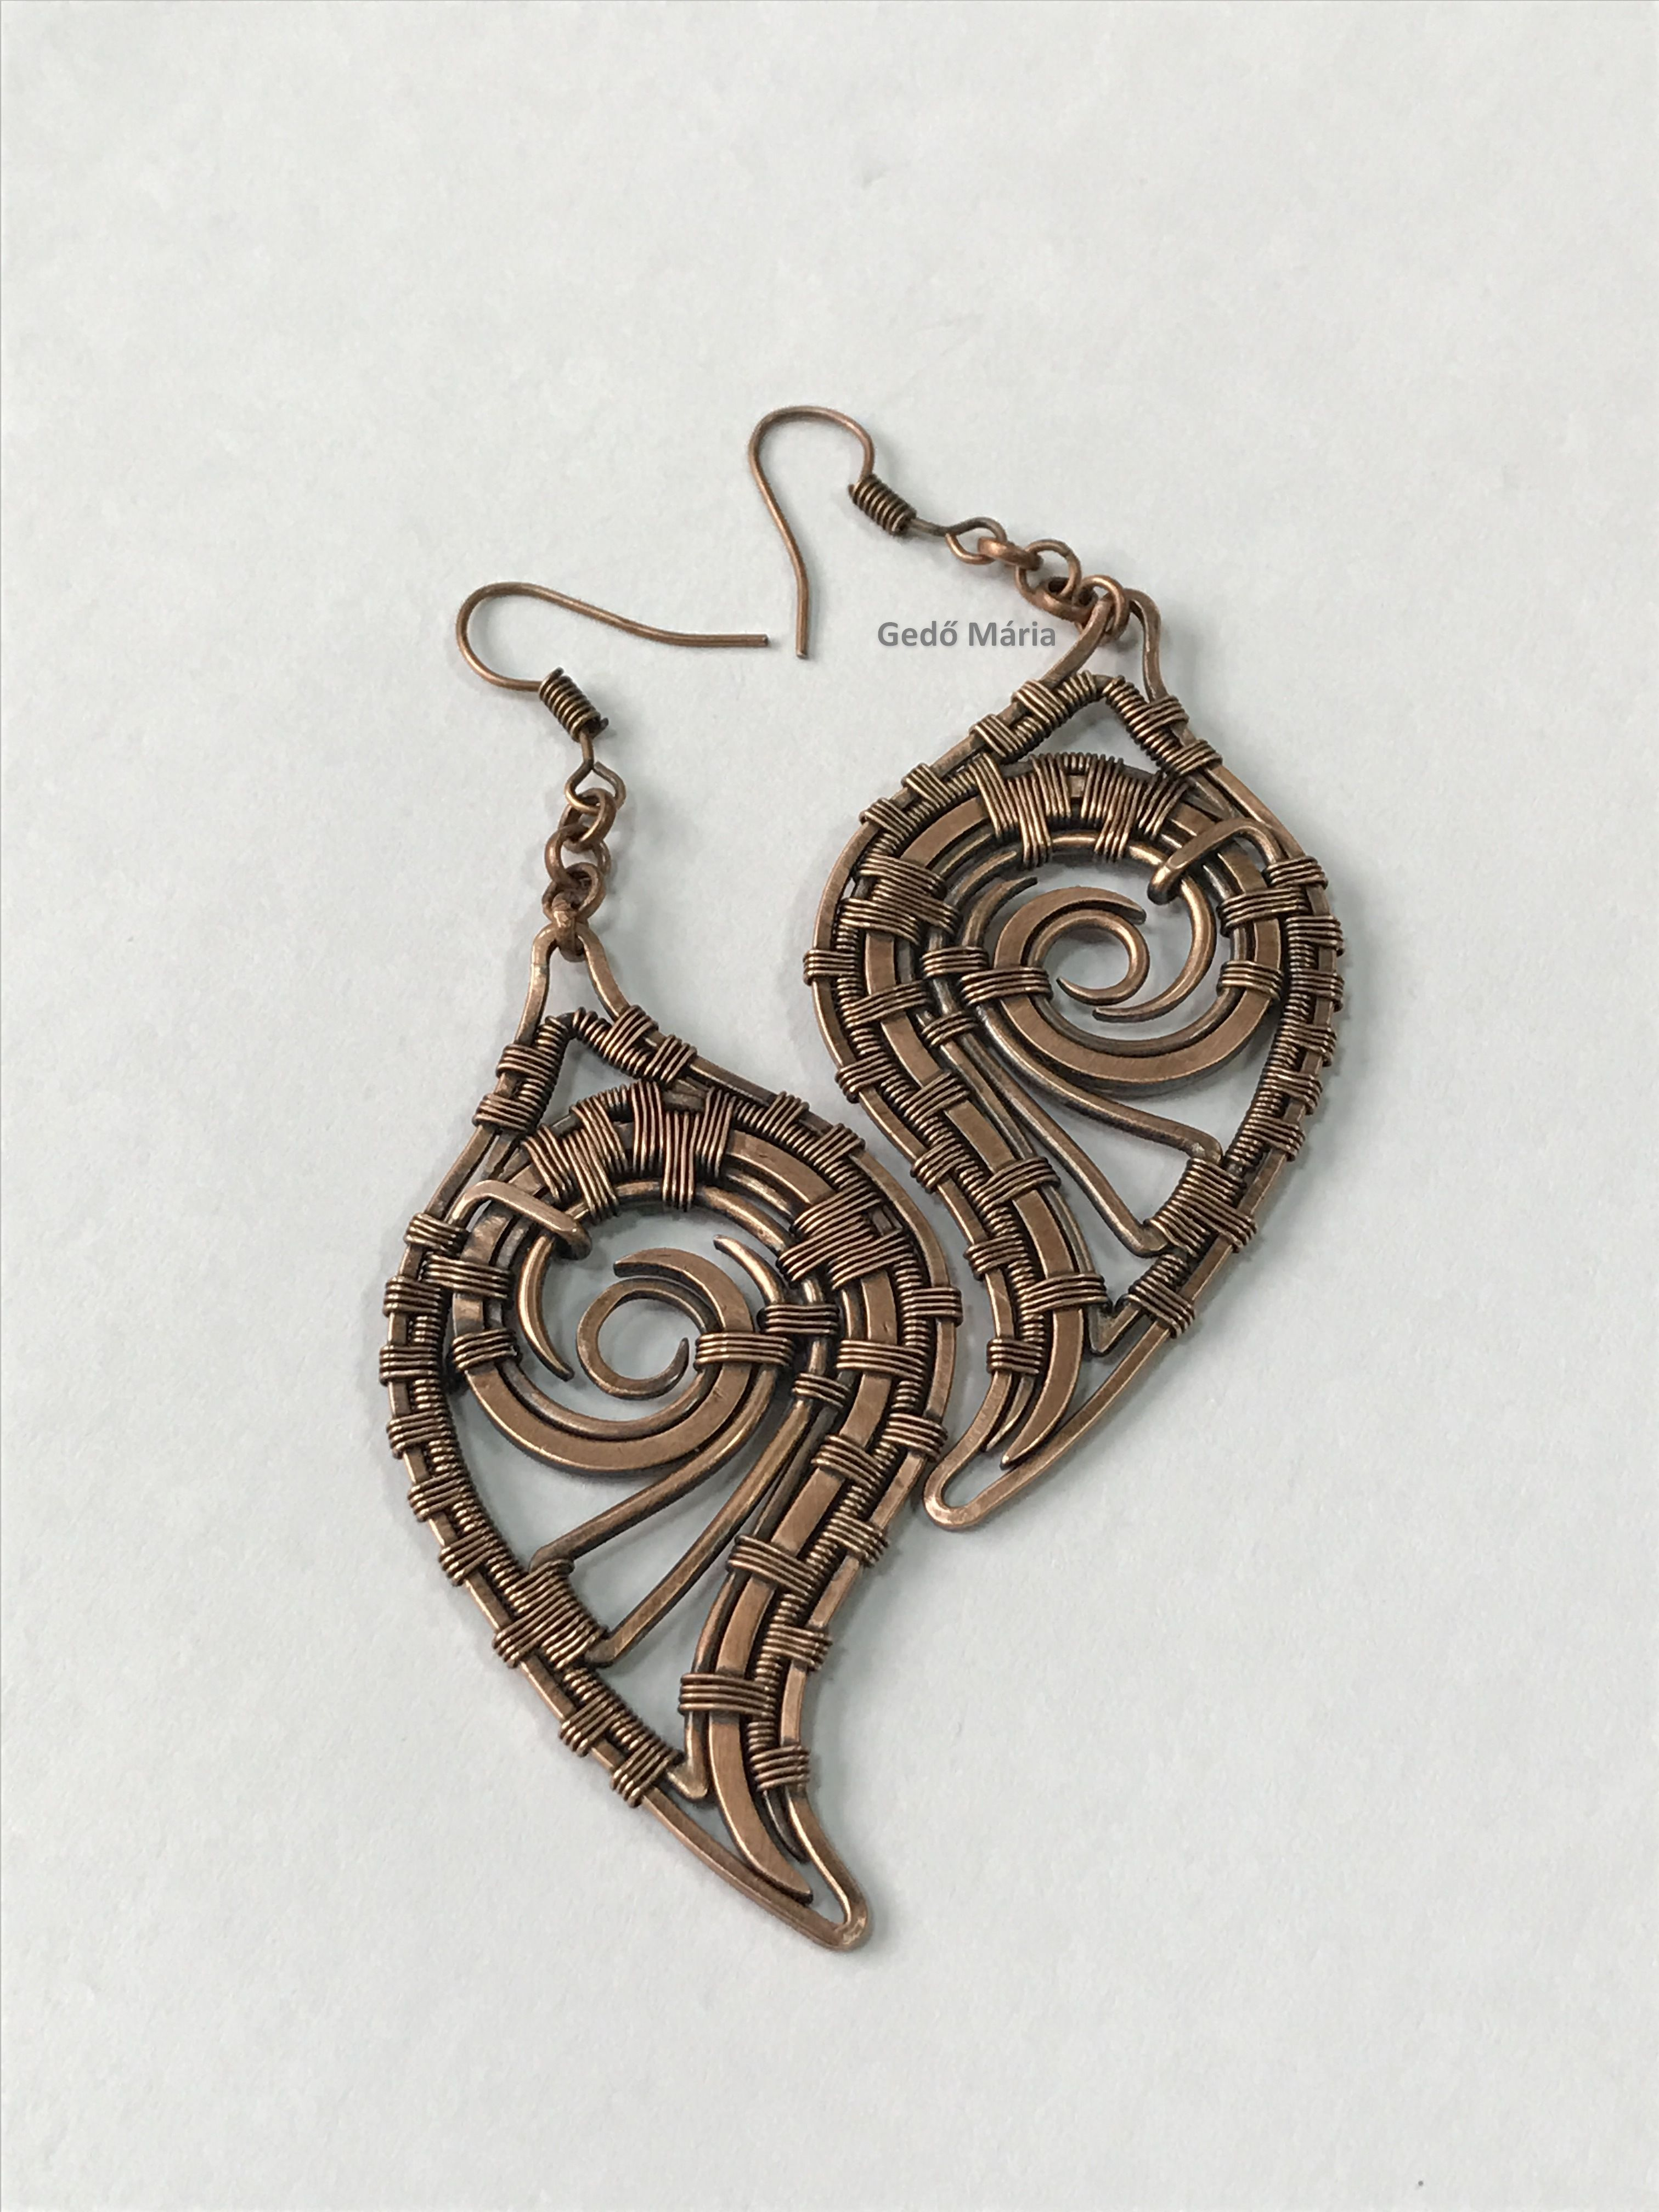 Phenomenal Pin By Michelle Of Twistortions Designs On Wired Inspirations Wire Wiring Cloud Hisonuggs Outletorg